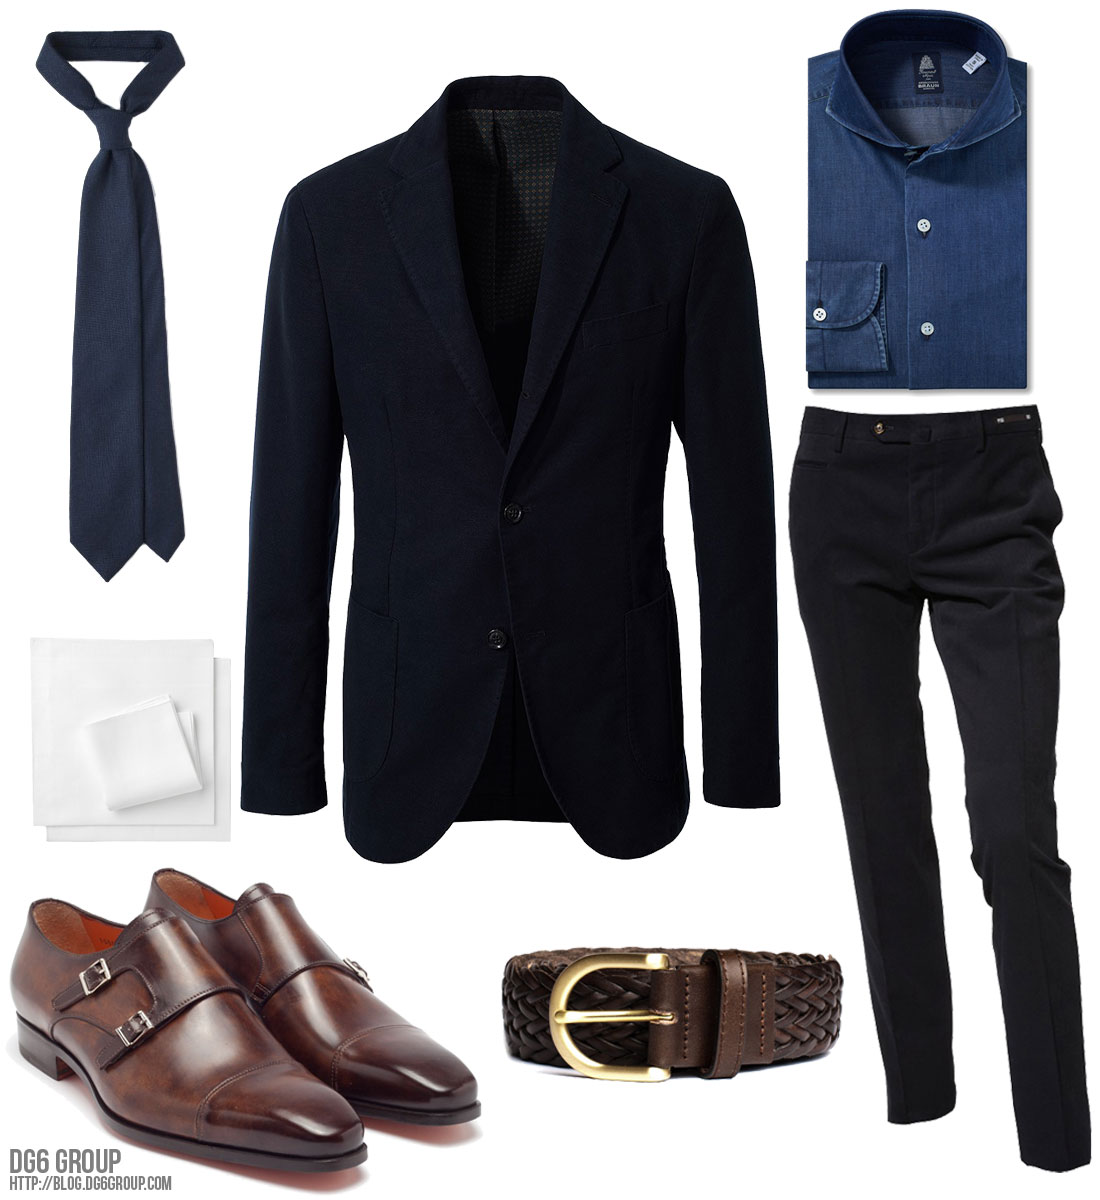 dg6group :     Friday Inspiration - Denim Fall   Jacket:  Montedoro  Shirt:  Finamore  Trousers:  PT01  Belt:  Berg&Berg  Tie:  Drake's London  Pocket Square:  Drake's   London  Shoes:  Santoni